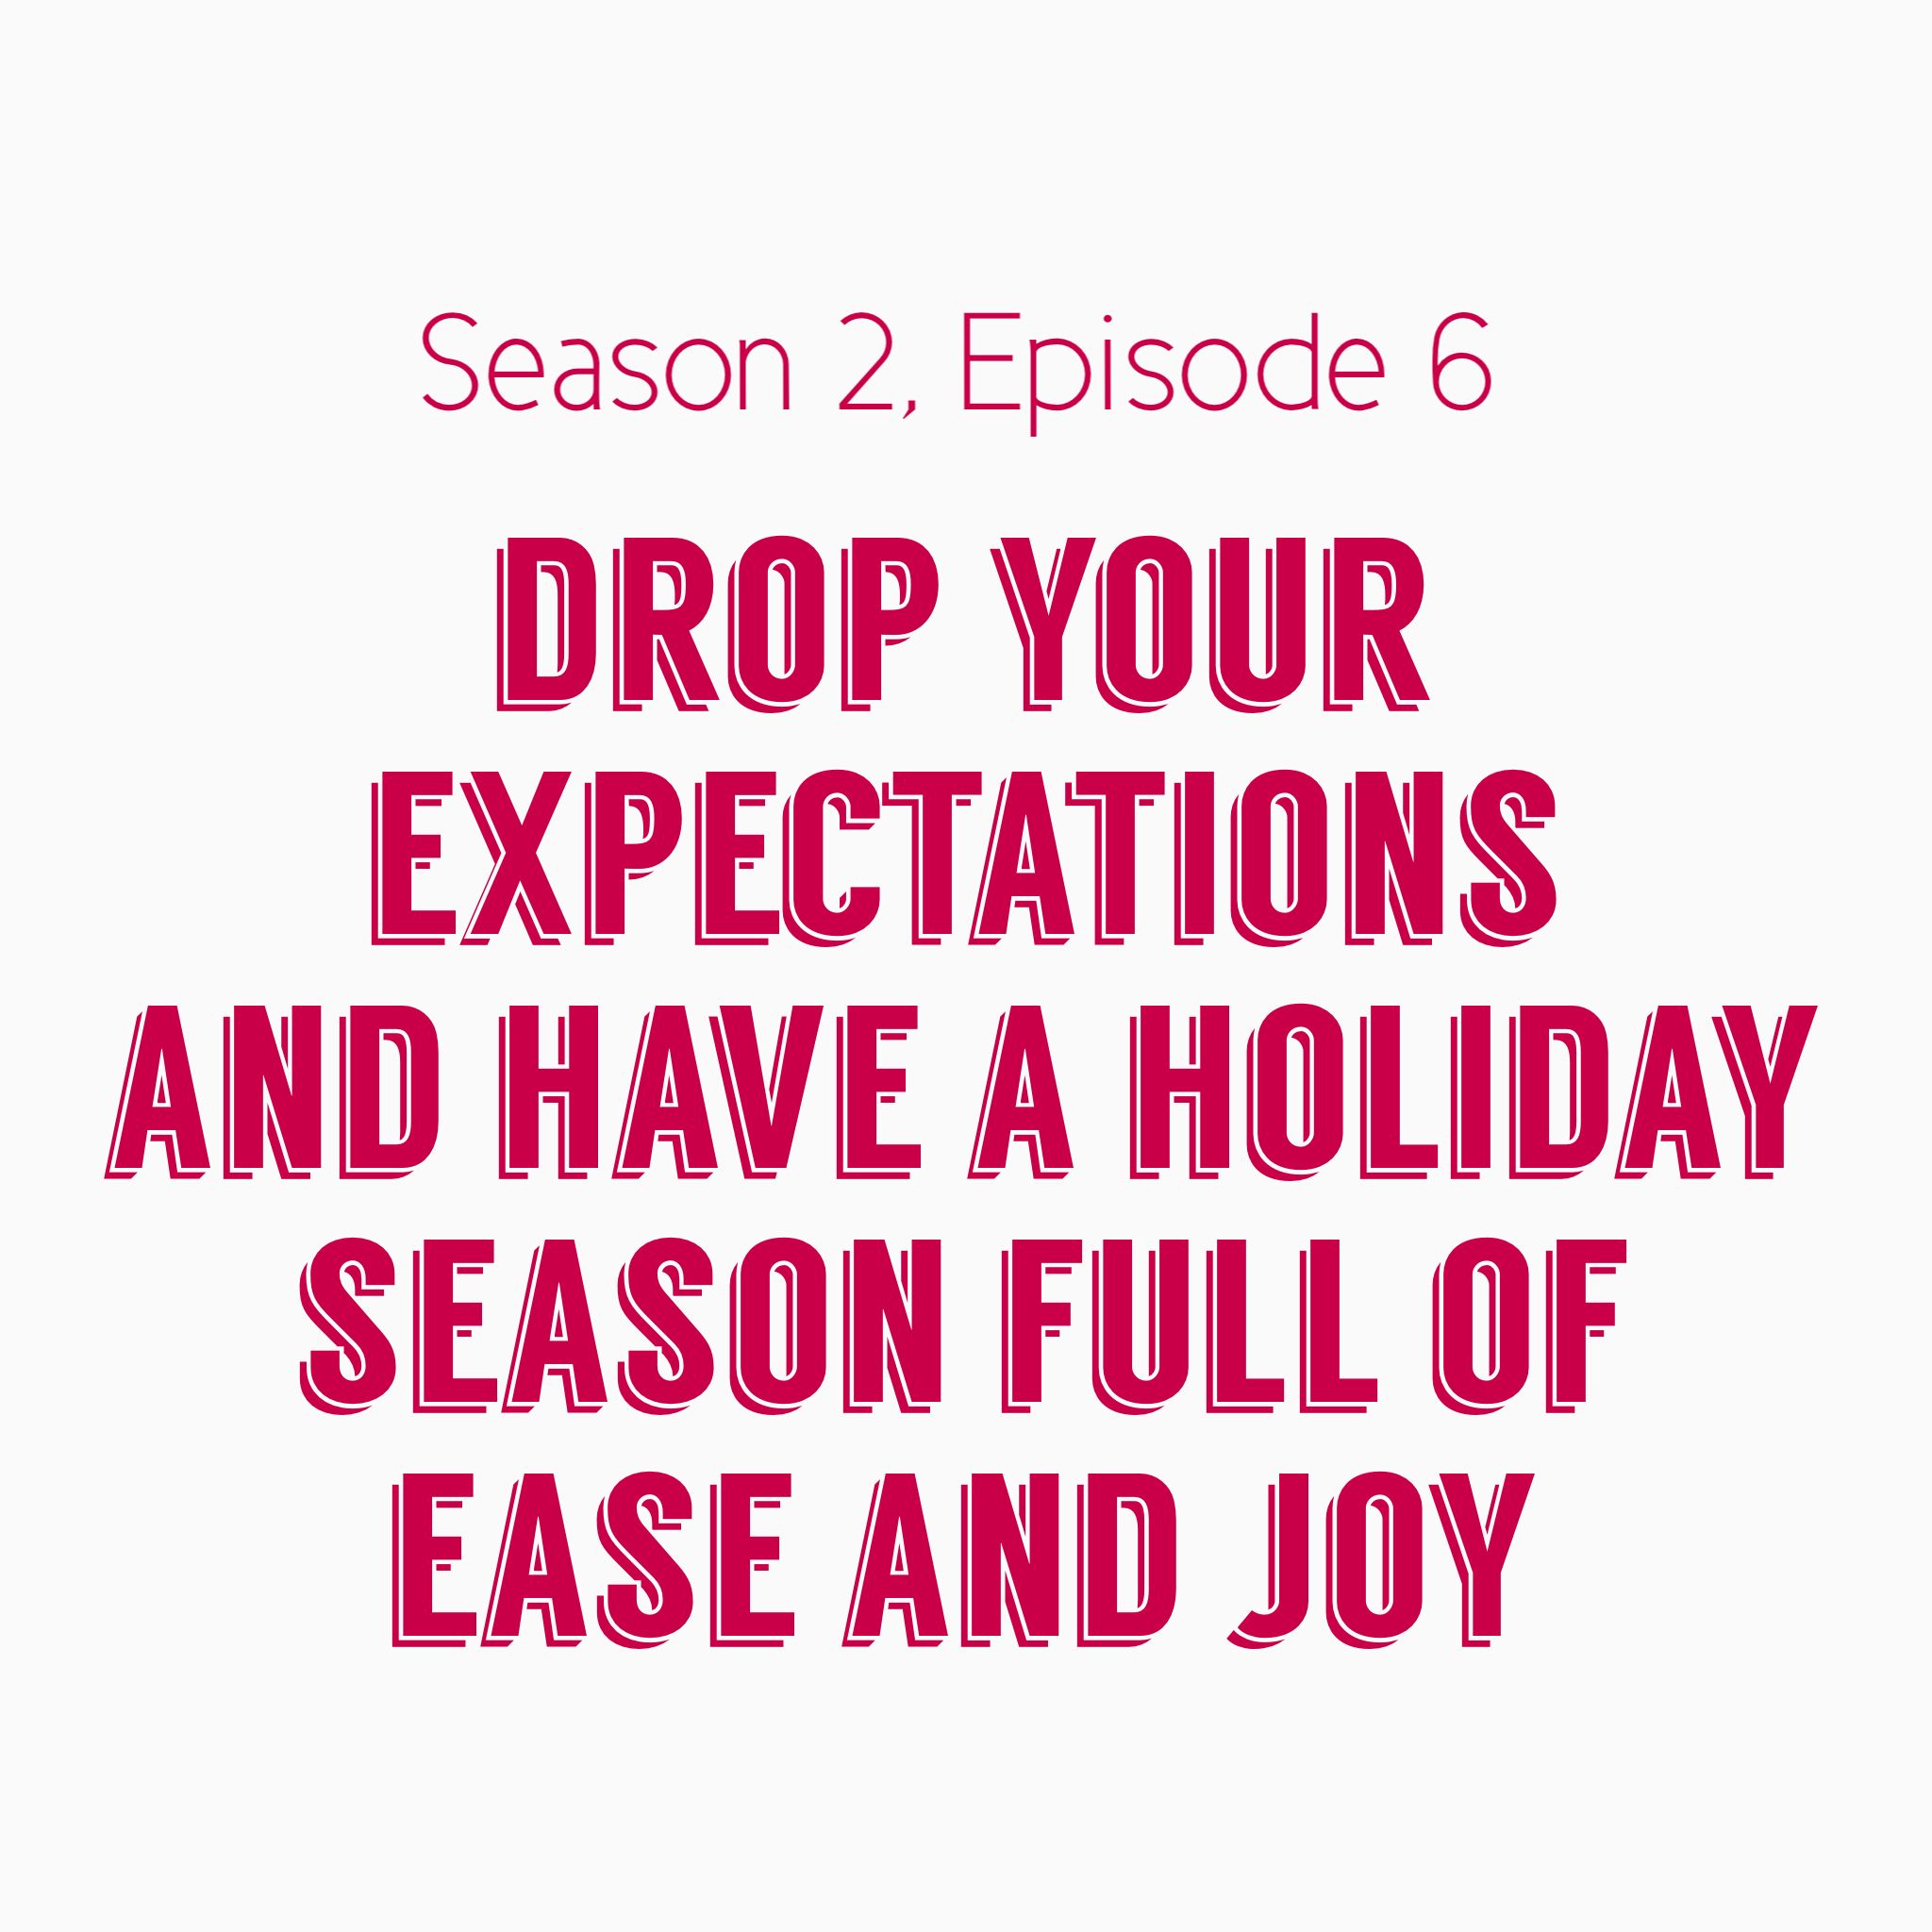 Drop Your Expectations and Have a Holiday Season Full of Ease and Joy